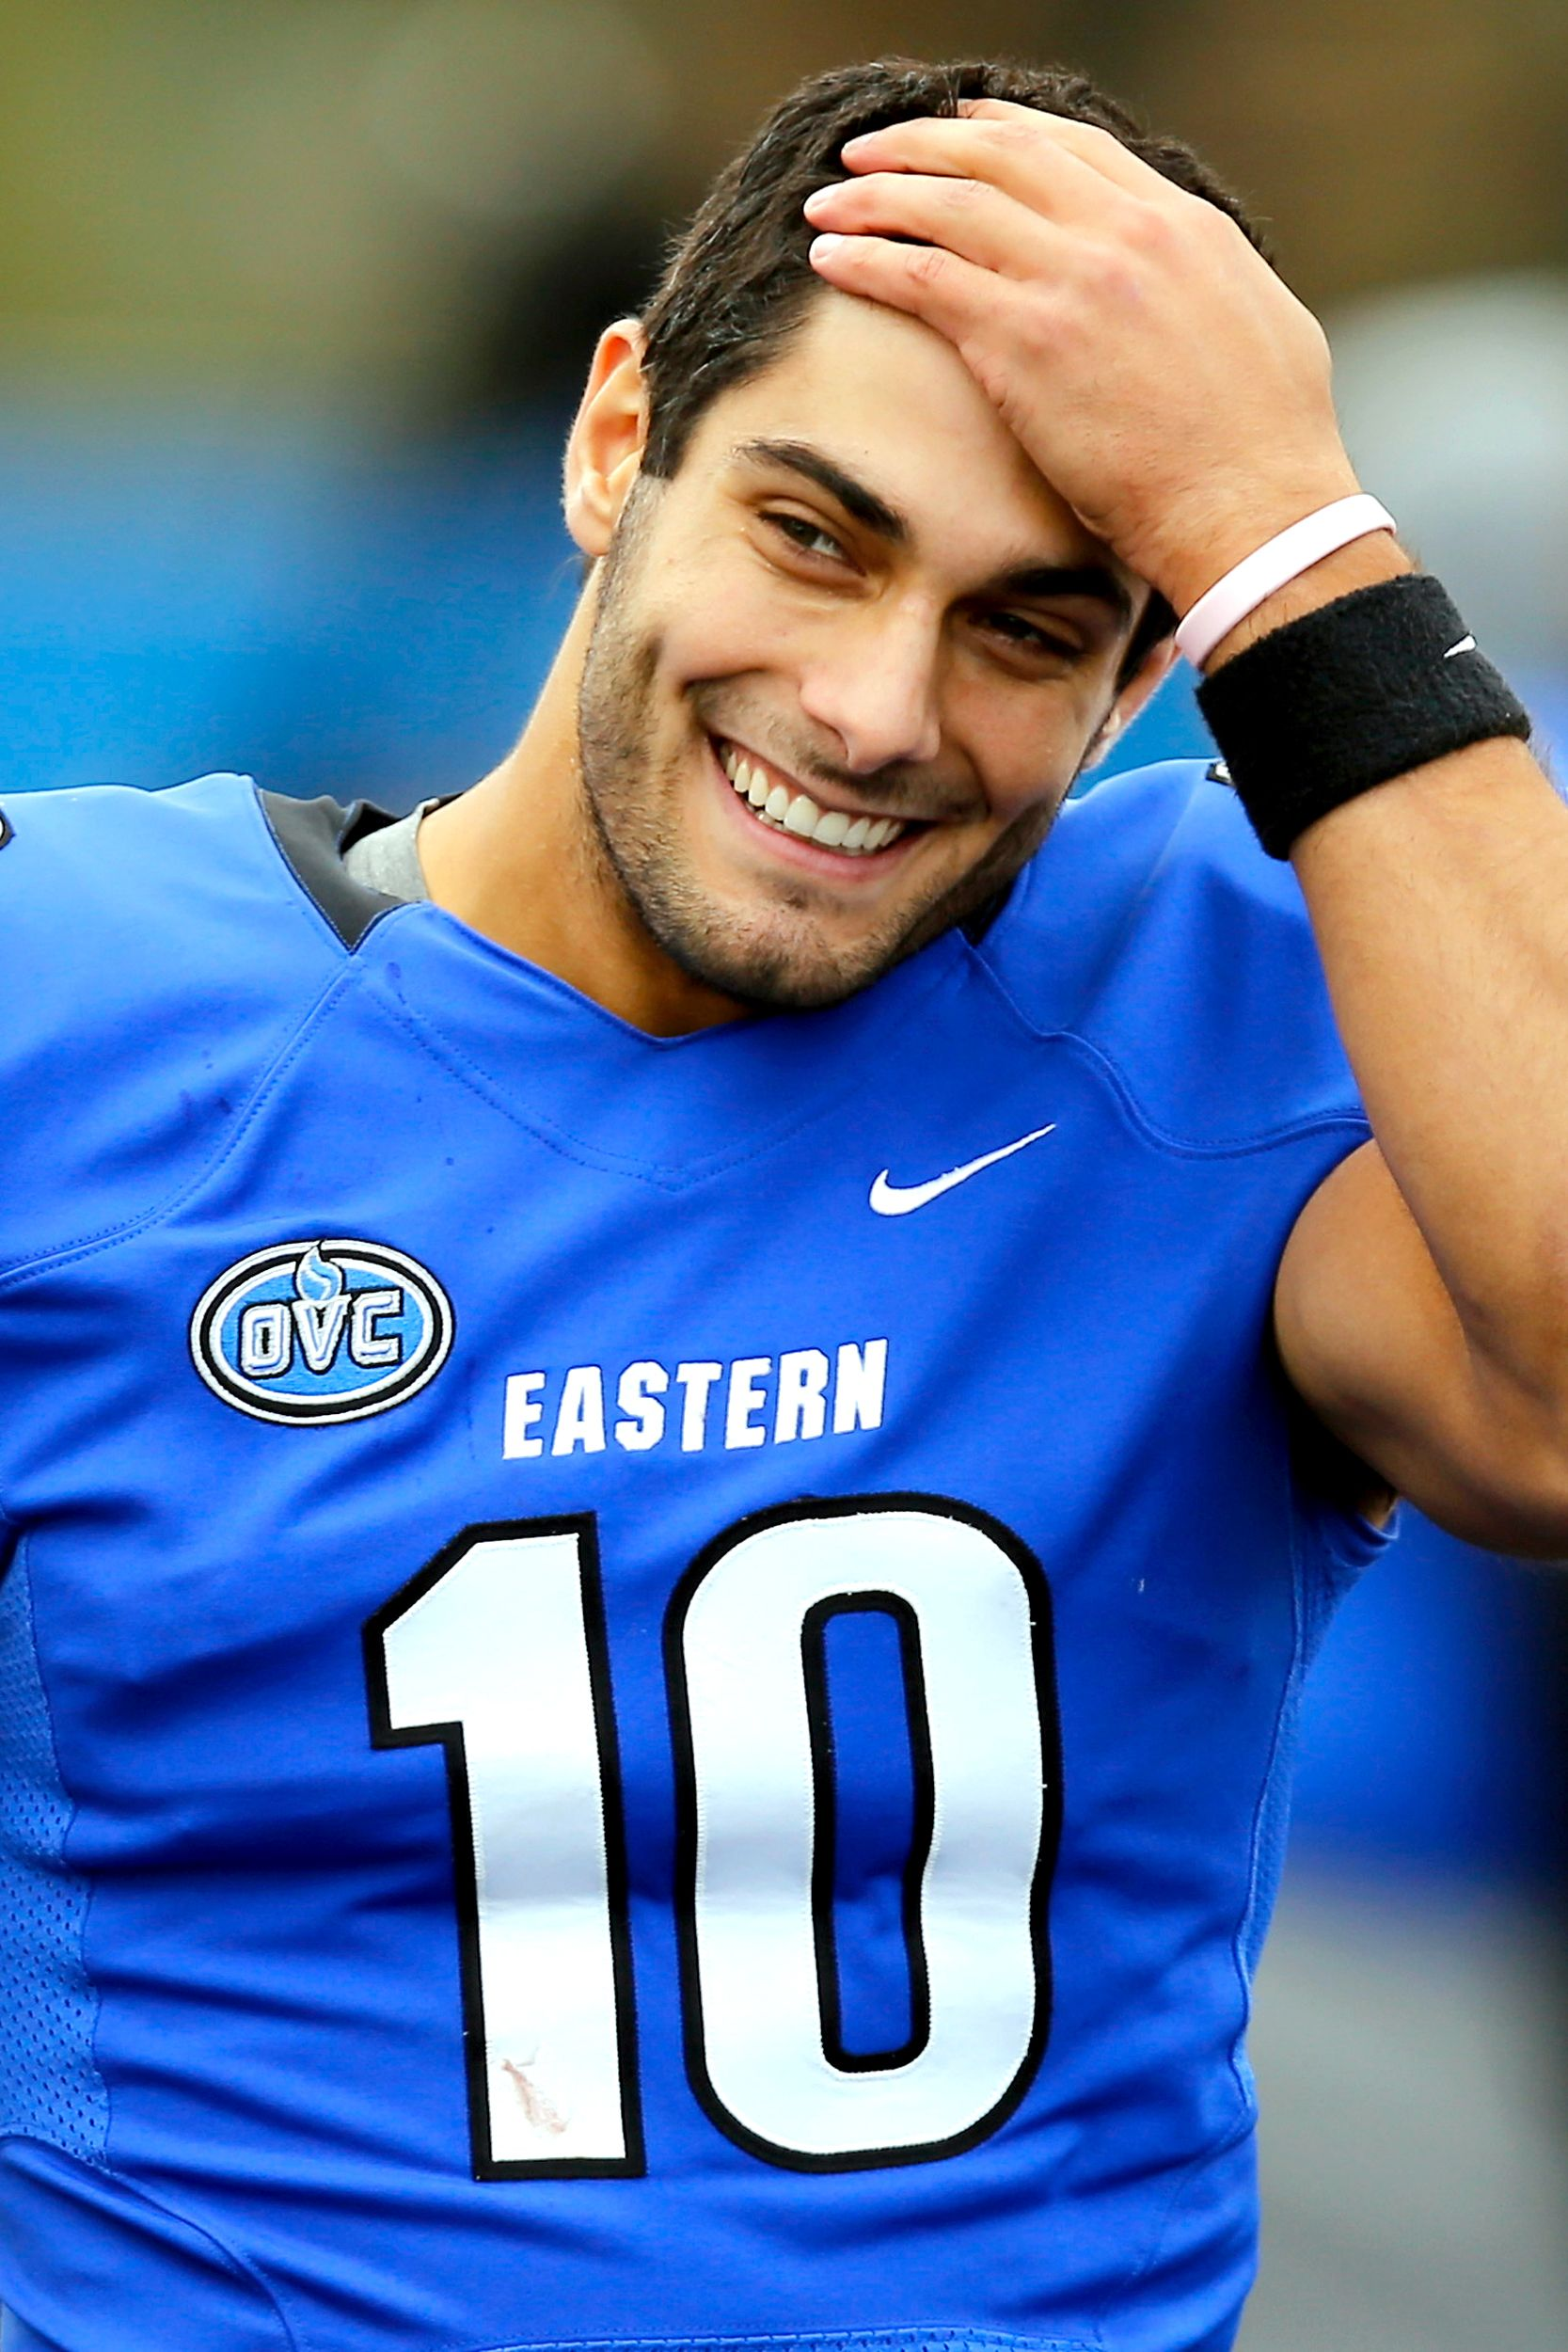 Get To Know Jimmy Garoppolo Tom Brady S Deflate Gate Substitute Tom Brady New England Patriots Tom Brady News